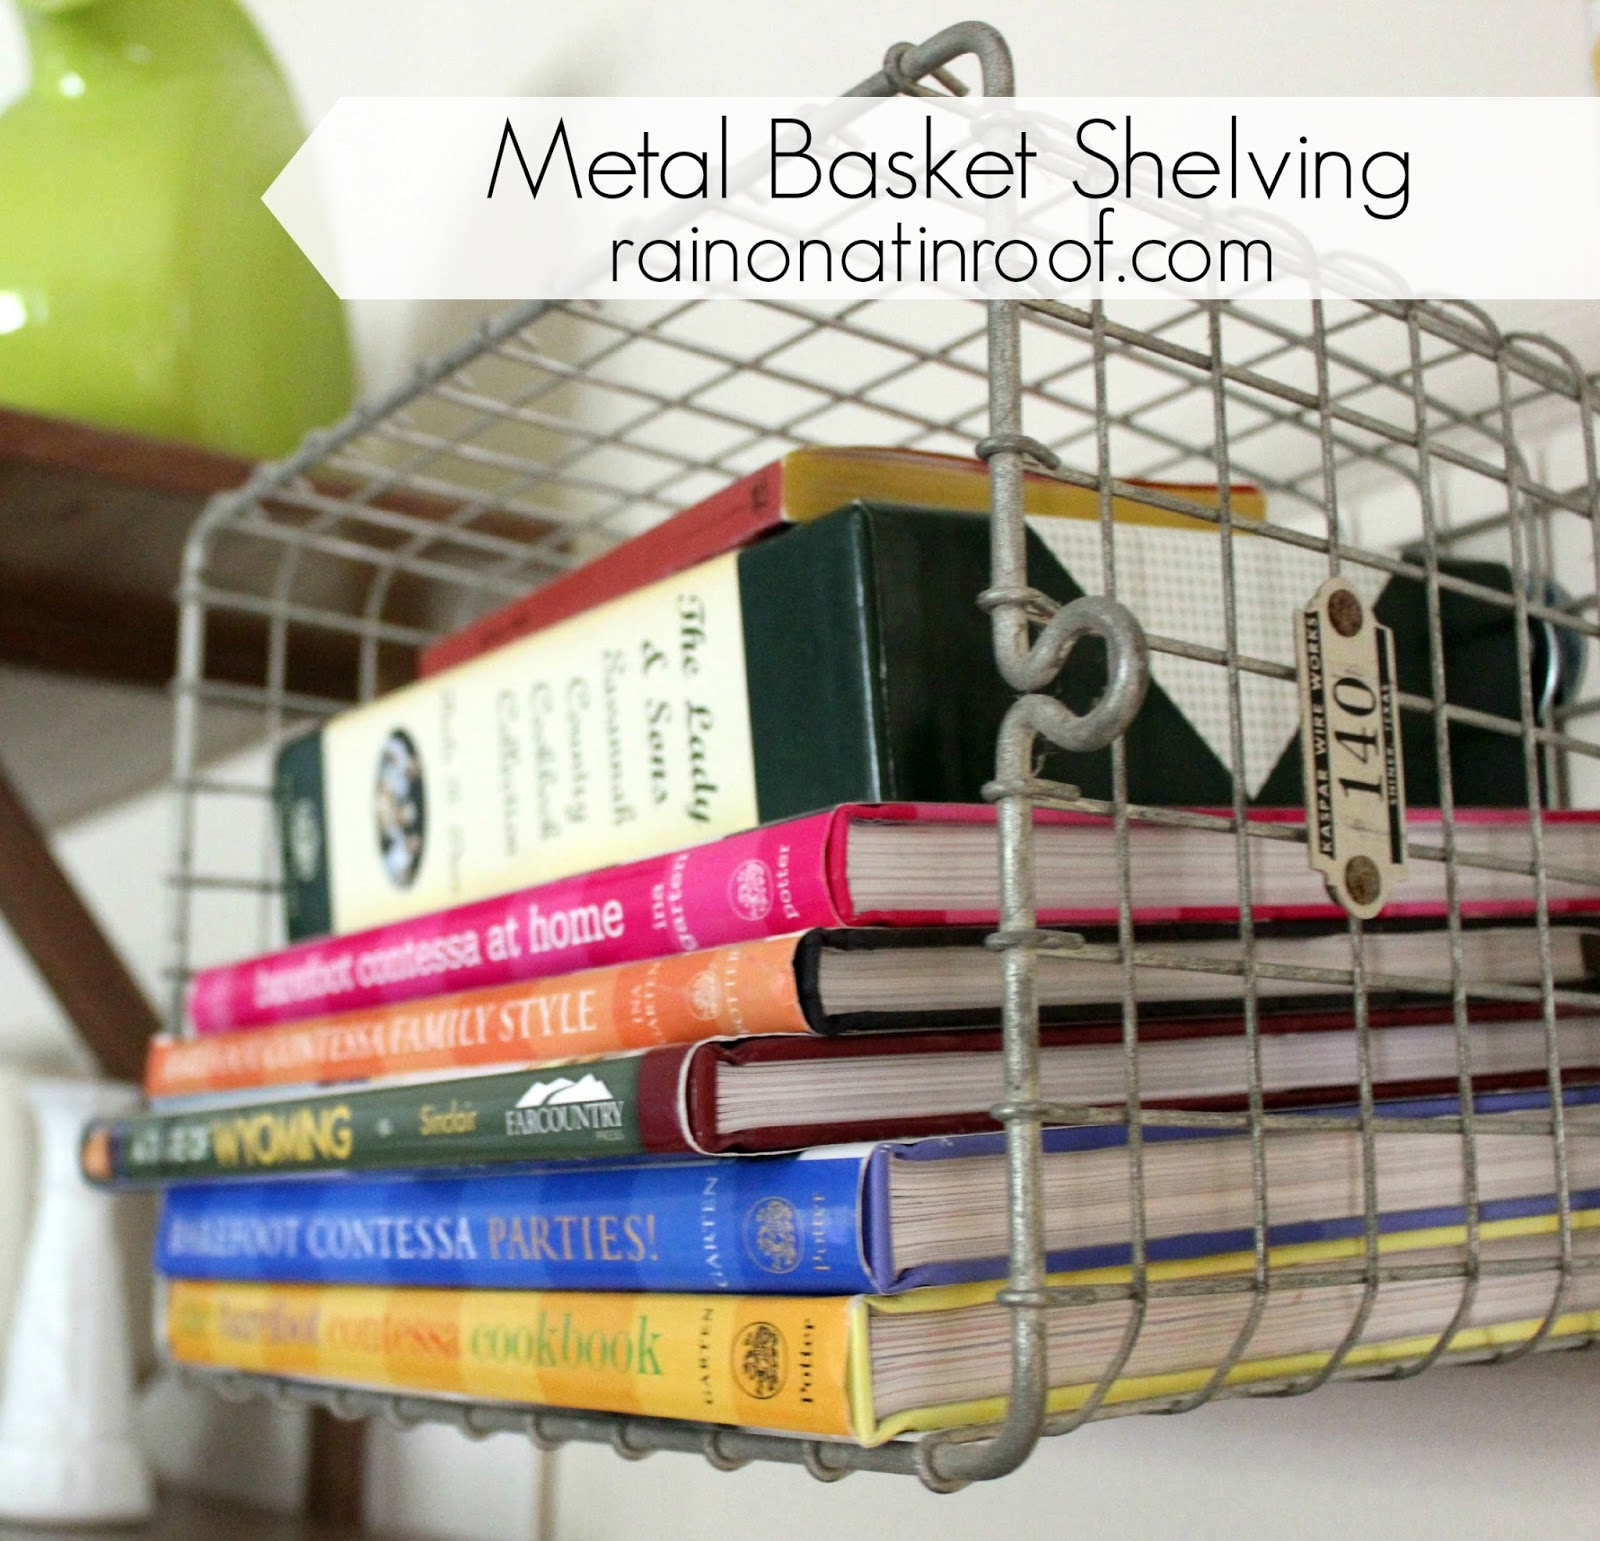 DIY Metal Basket Shelving {rainonatinroof.com} #metal #basket #organize #